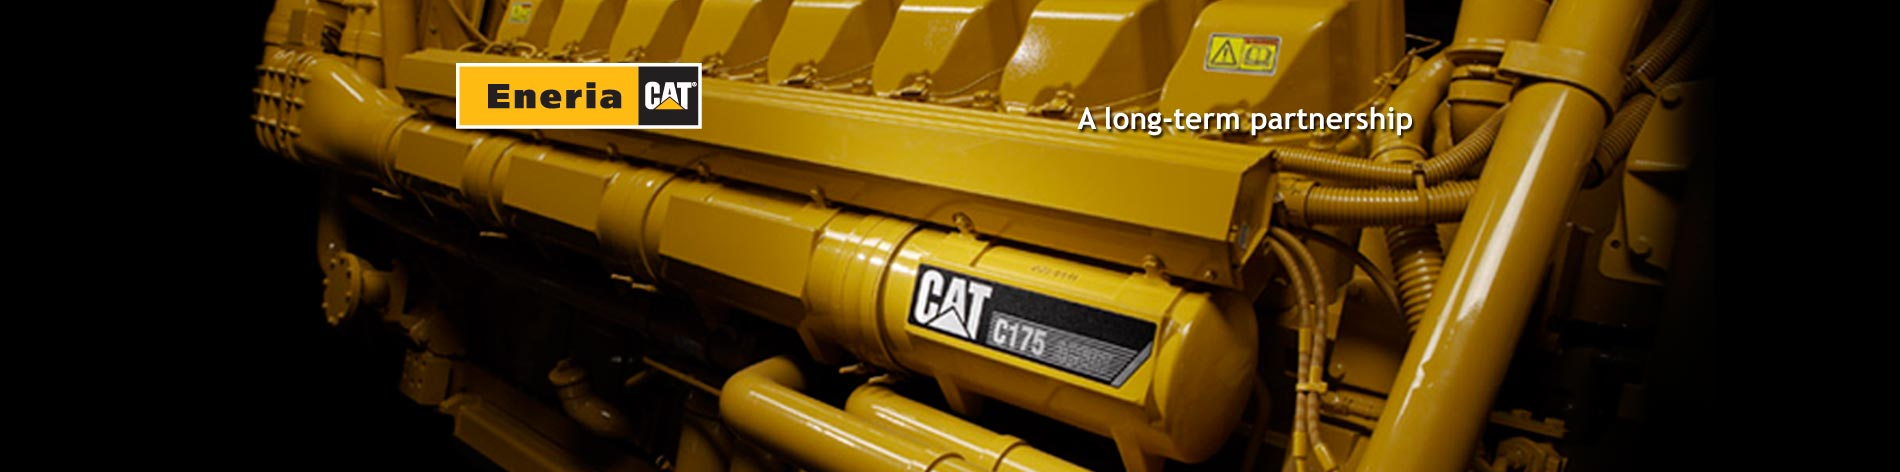 As Caterpillar's exclusive dealer in France and in several other countries, we provide sales, service and maintenance of generator sets, UPS and motors.